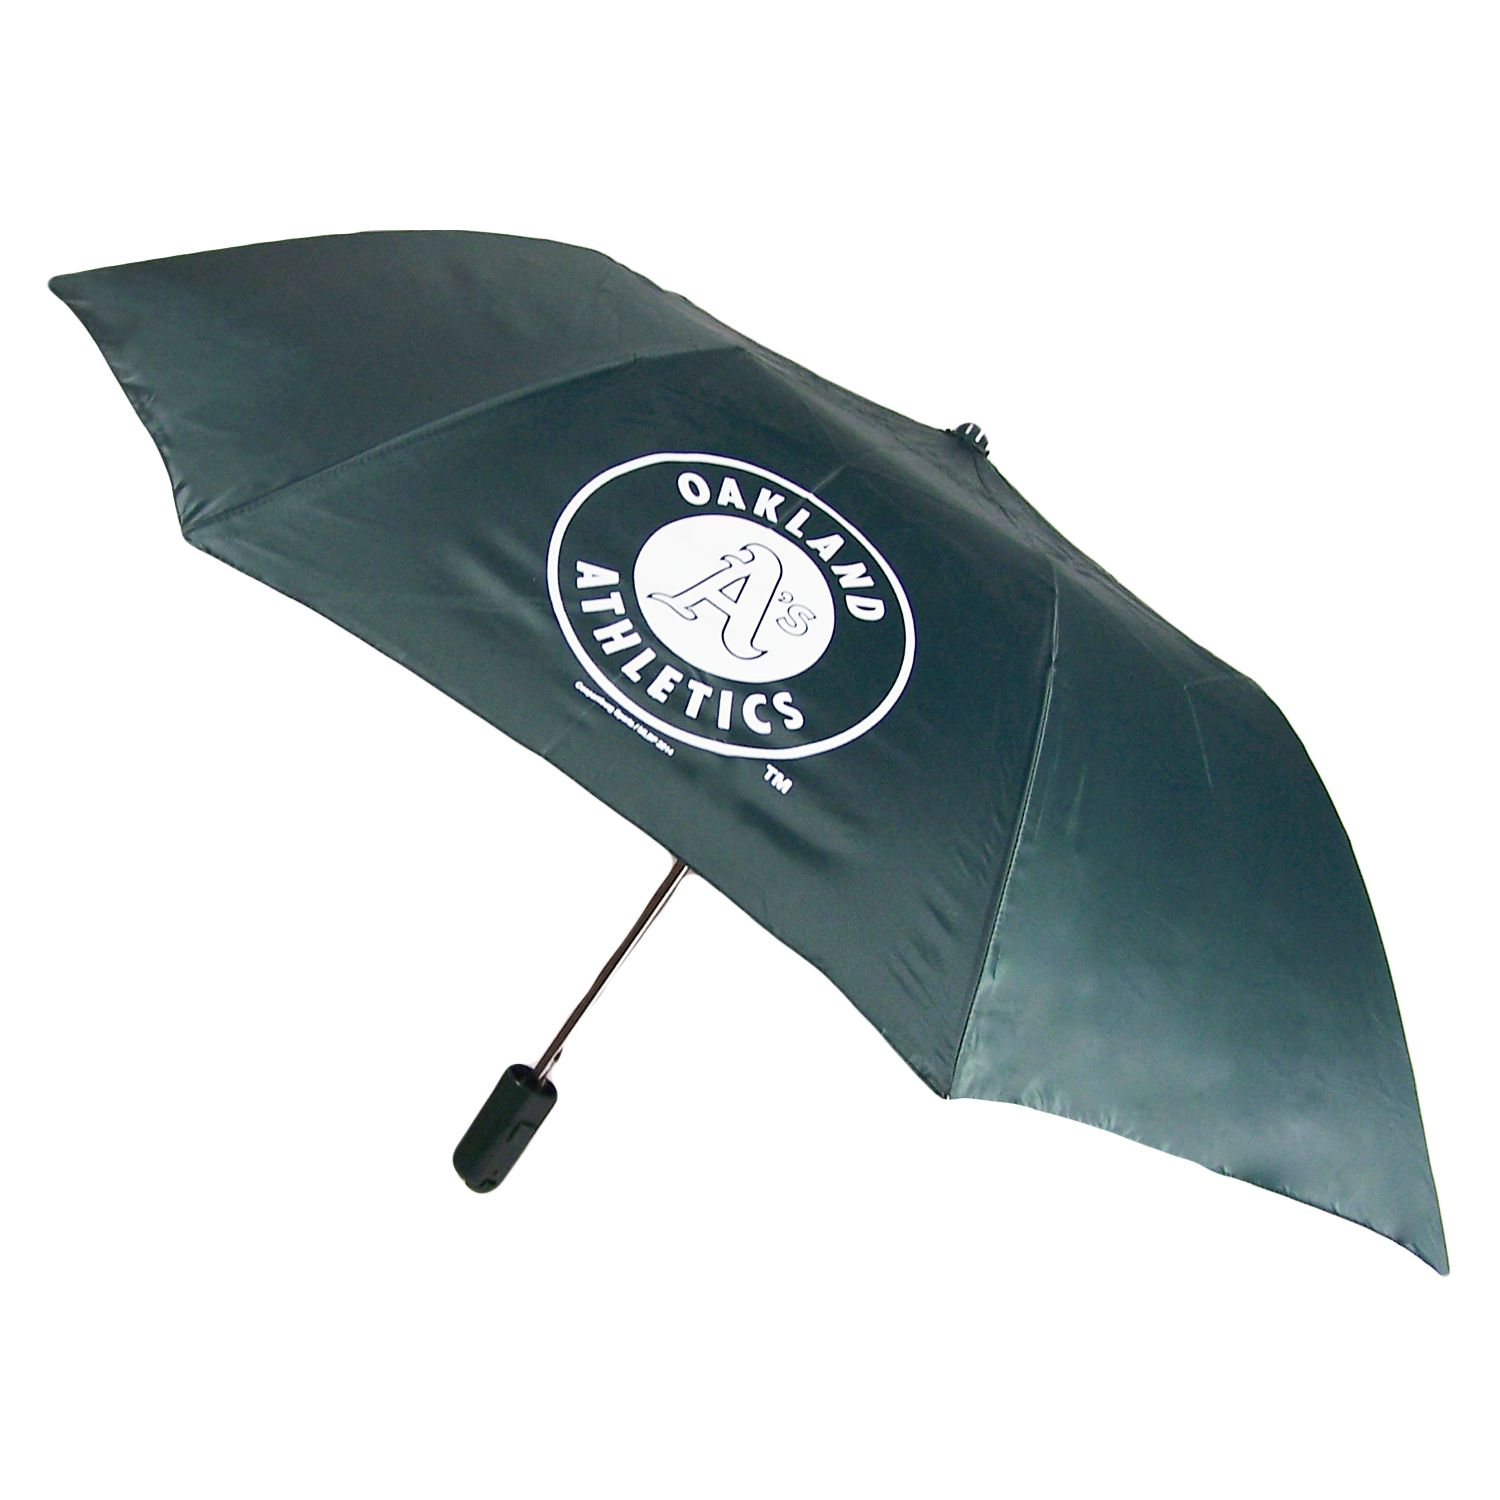 Oakland Athletics Official MLB Automatic Folding Umbrella Canopy by Coopersburg Sports 196998